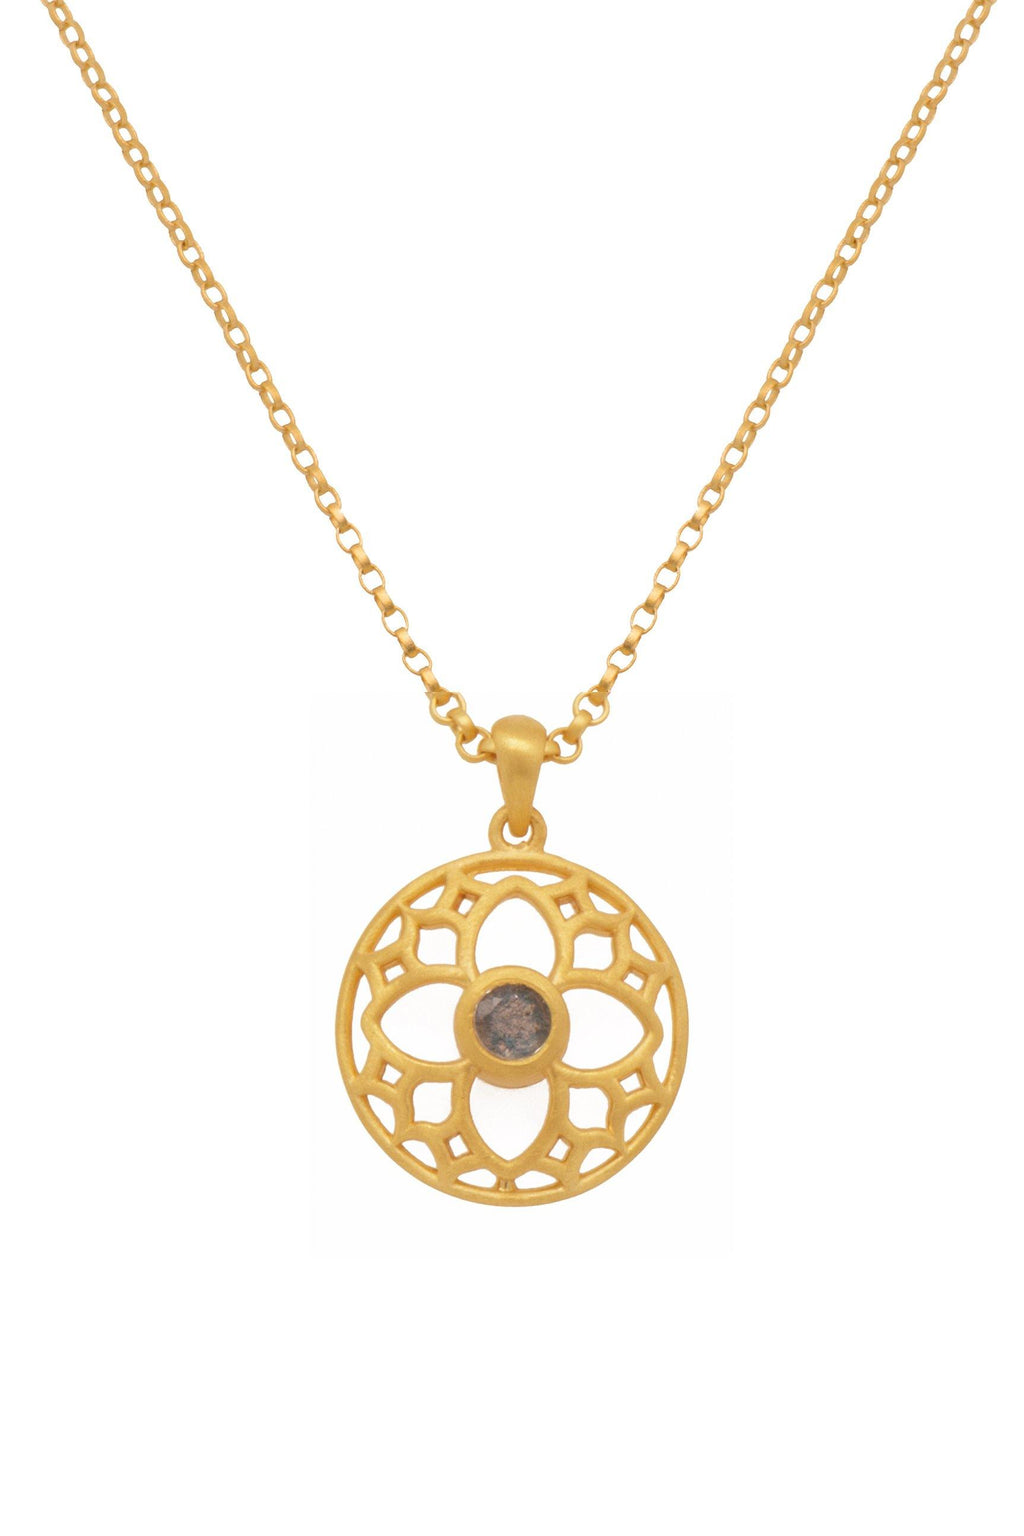 JOYFULP2LAB PENDANT- JOYFUL CIRCLE 20MM LABRODORITE 24K GOLD VERMEIL